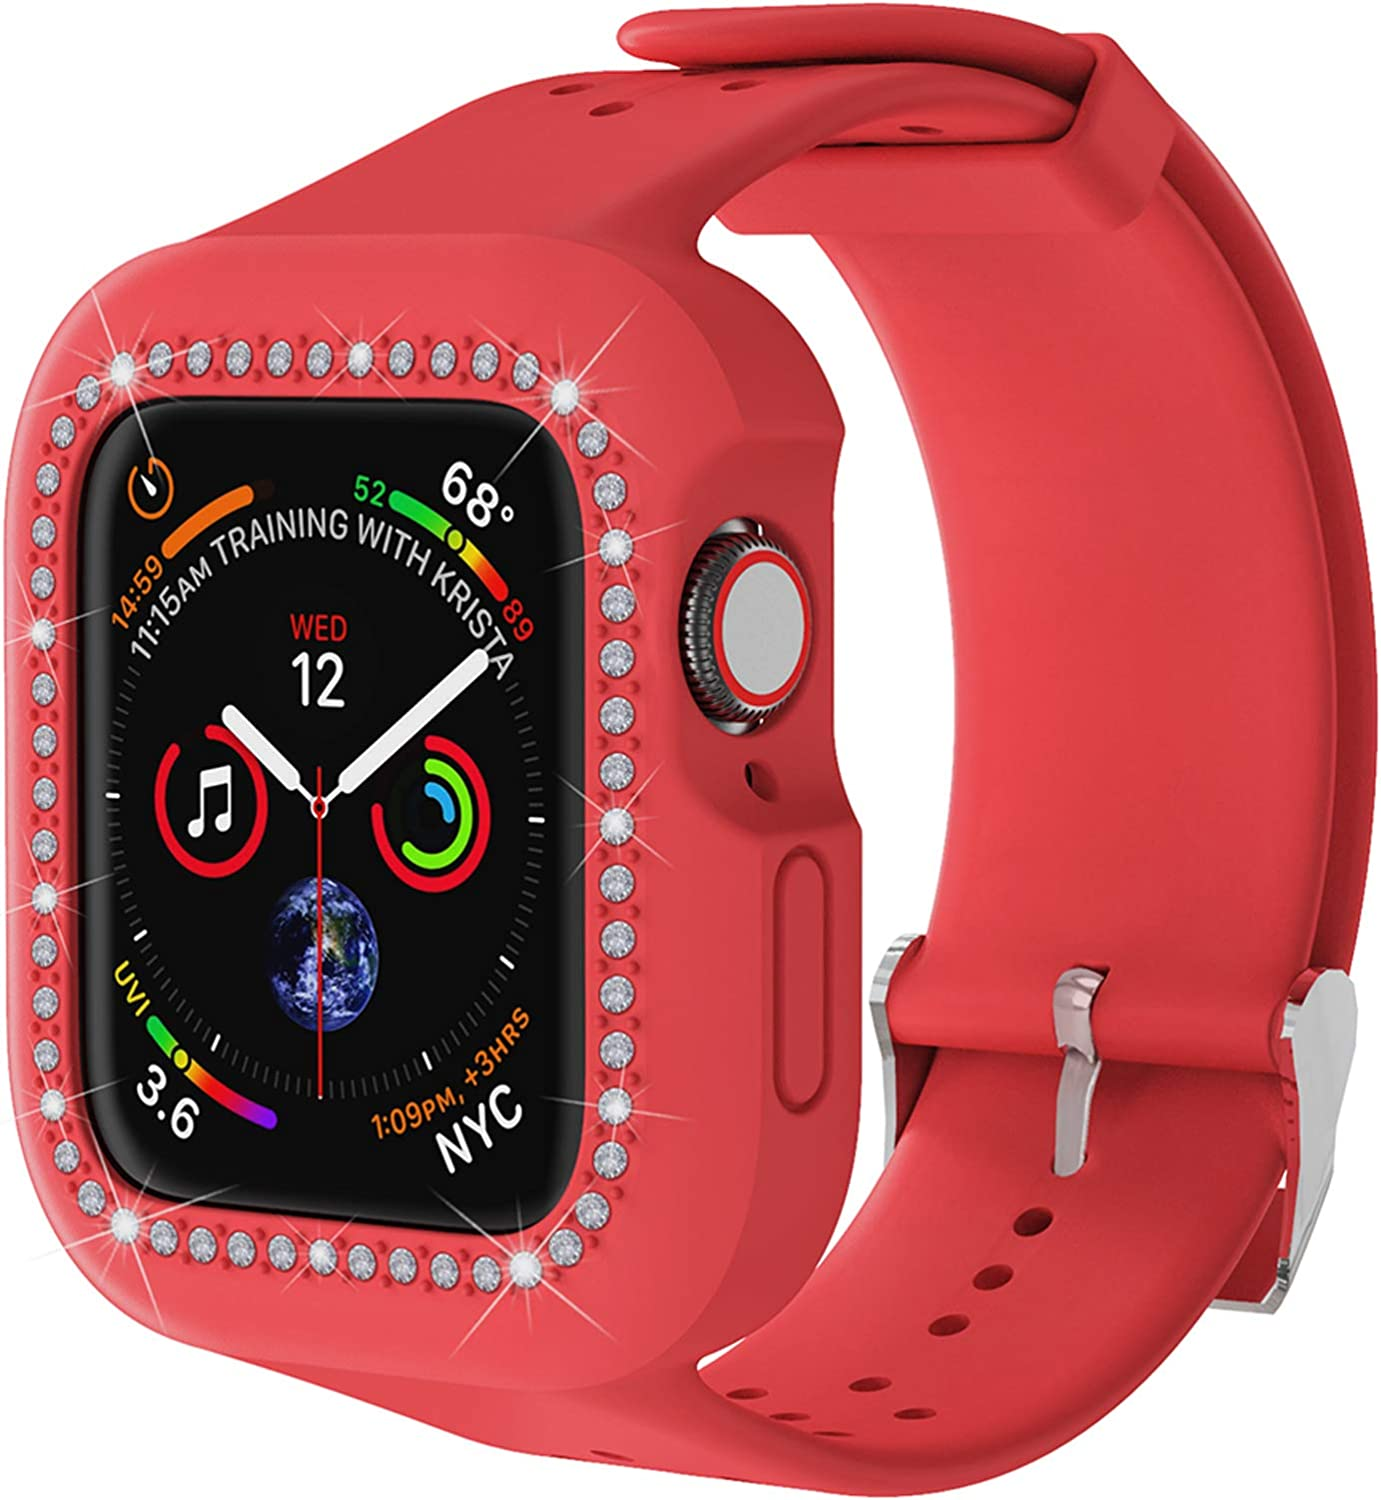 Smart Watch Case with Bands, Iwatch Protect Cover for Women Girl, Compatible Apple Watch, Bling Diamond Rhinestone Silicone Wristband Strap for Apple Watch 38mm 40mm Series 6 se 5 4 3 2 1